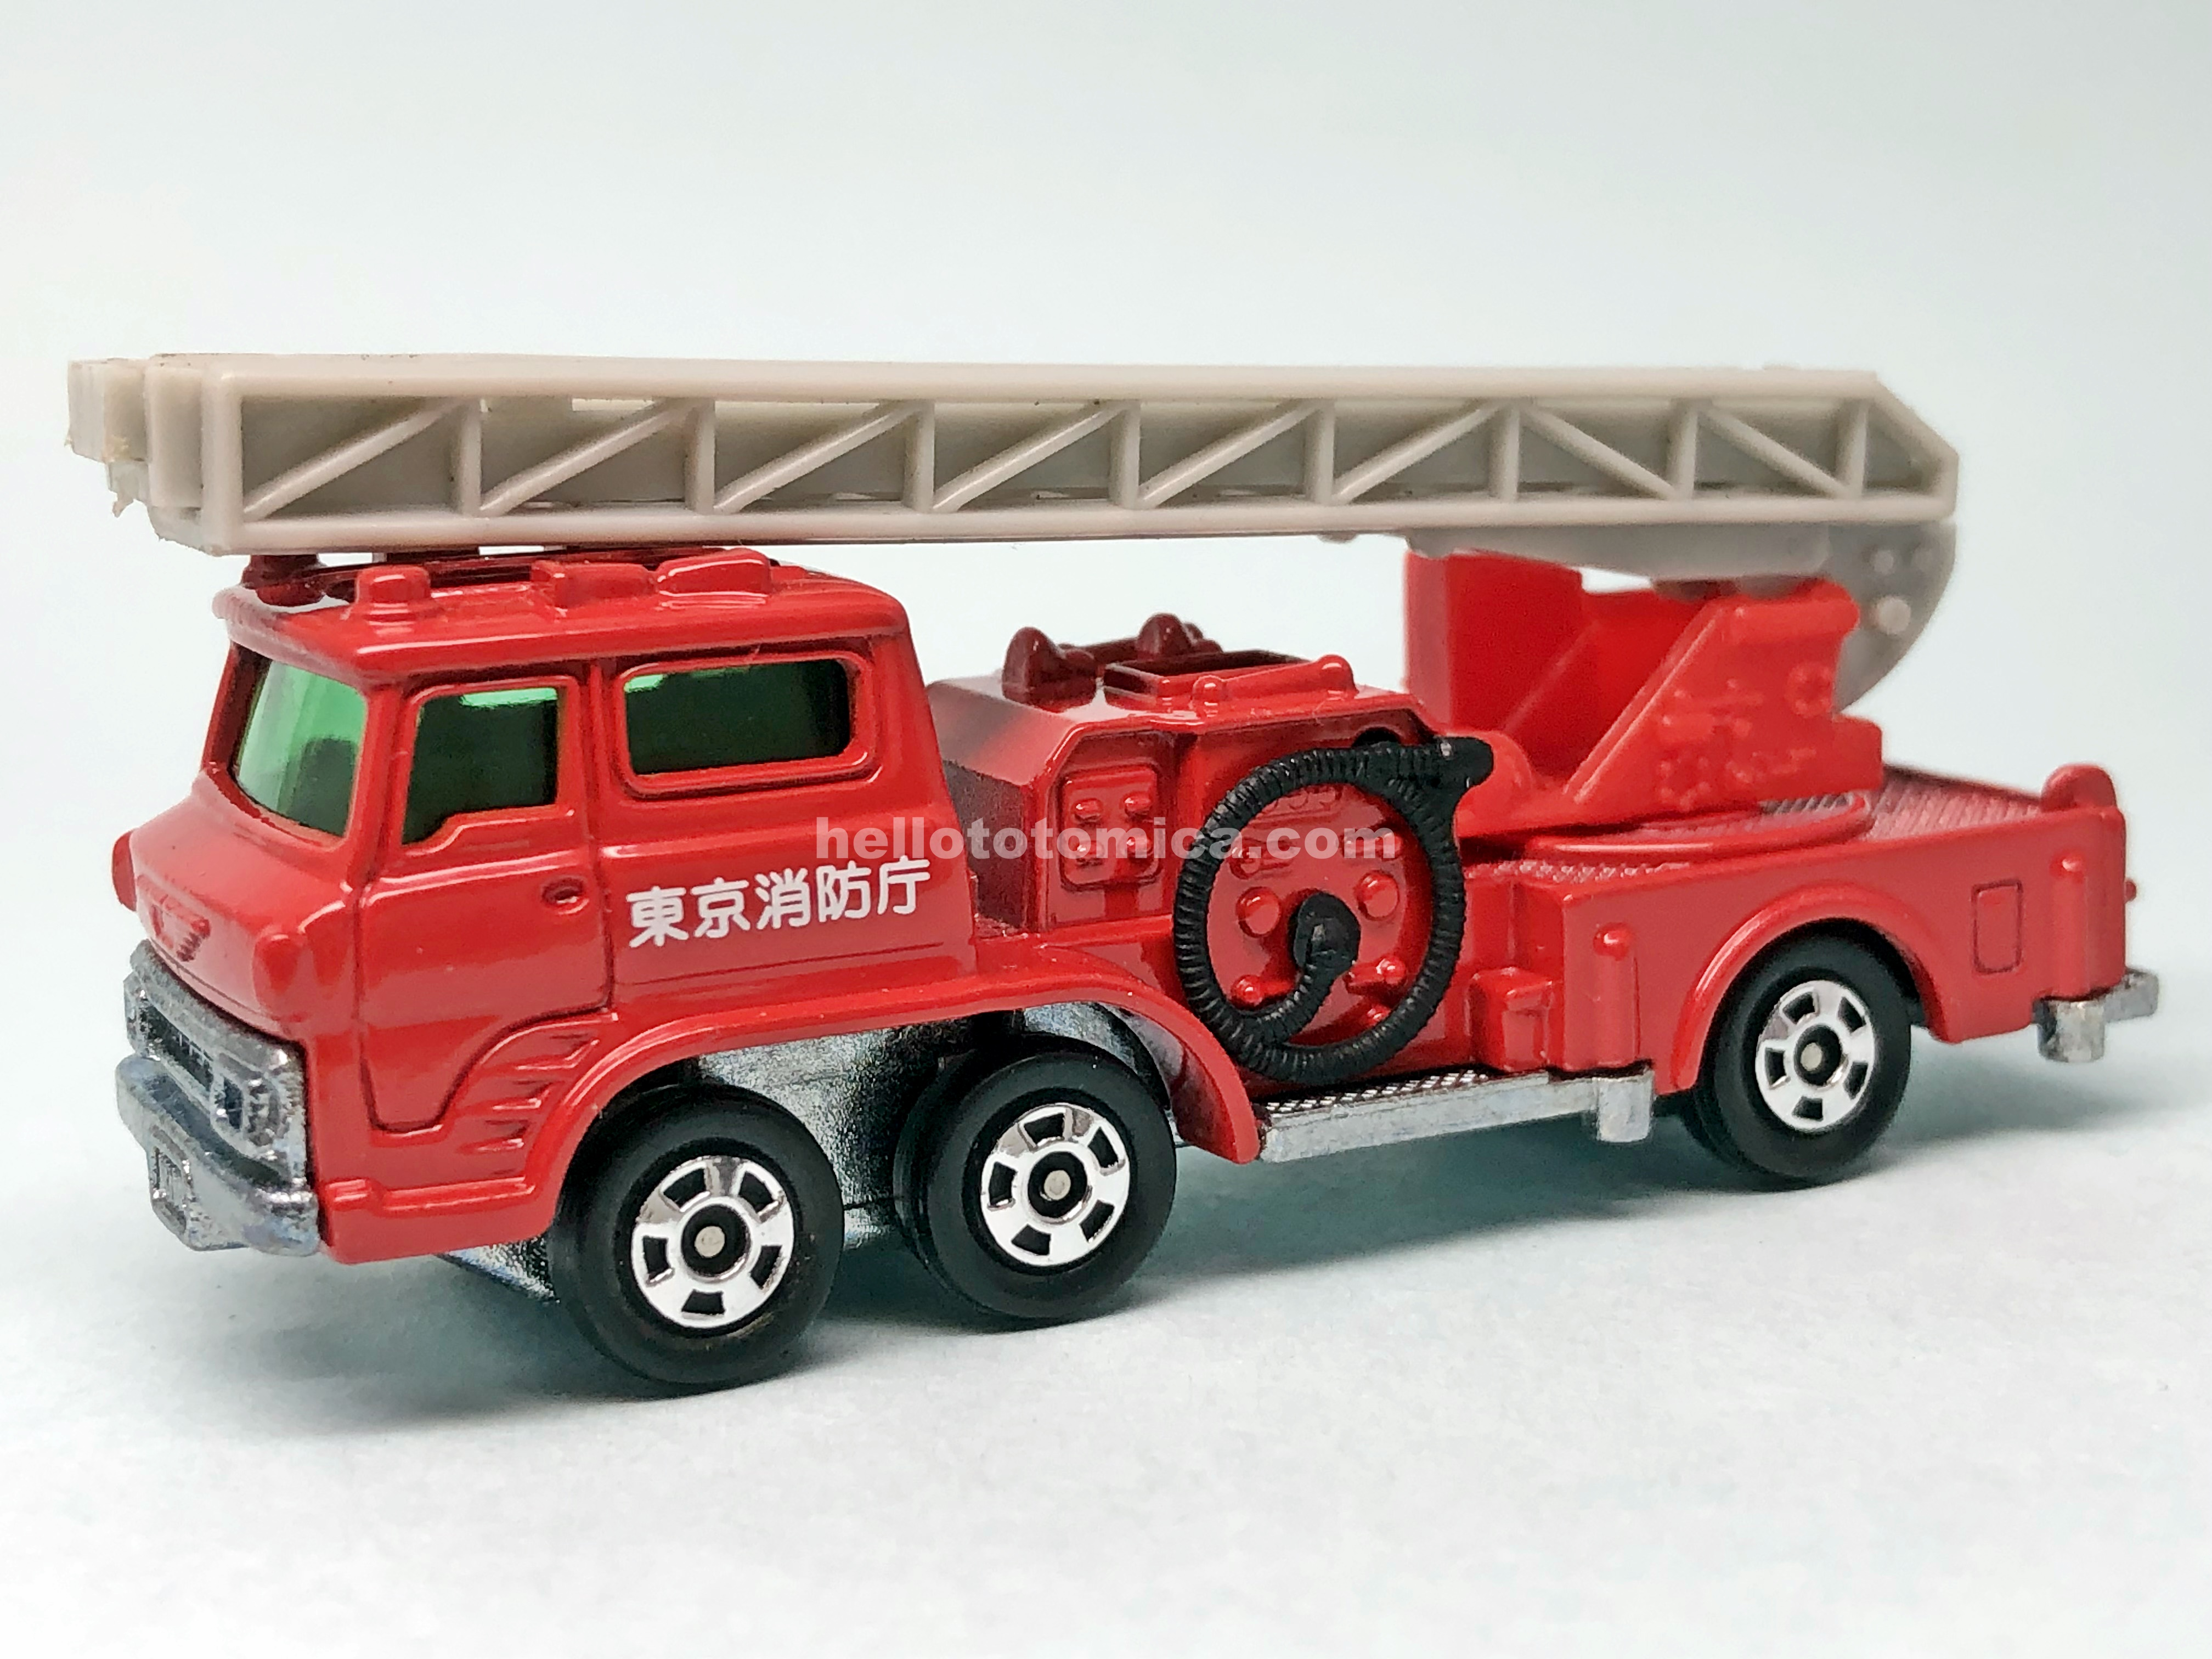 29-2 HINO AERIAL LADDER FIRE TRUCK